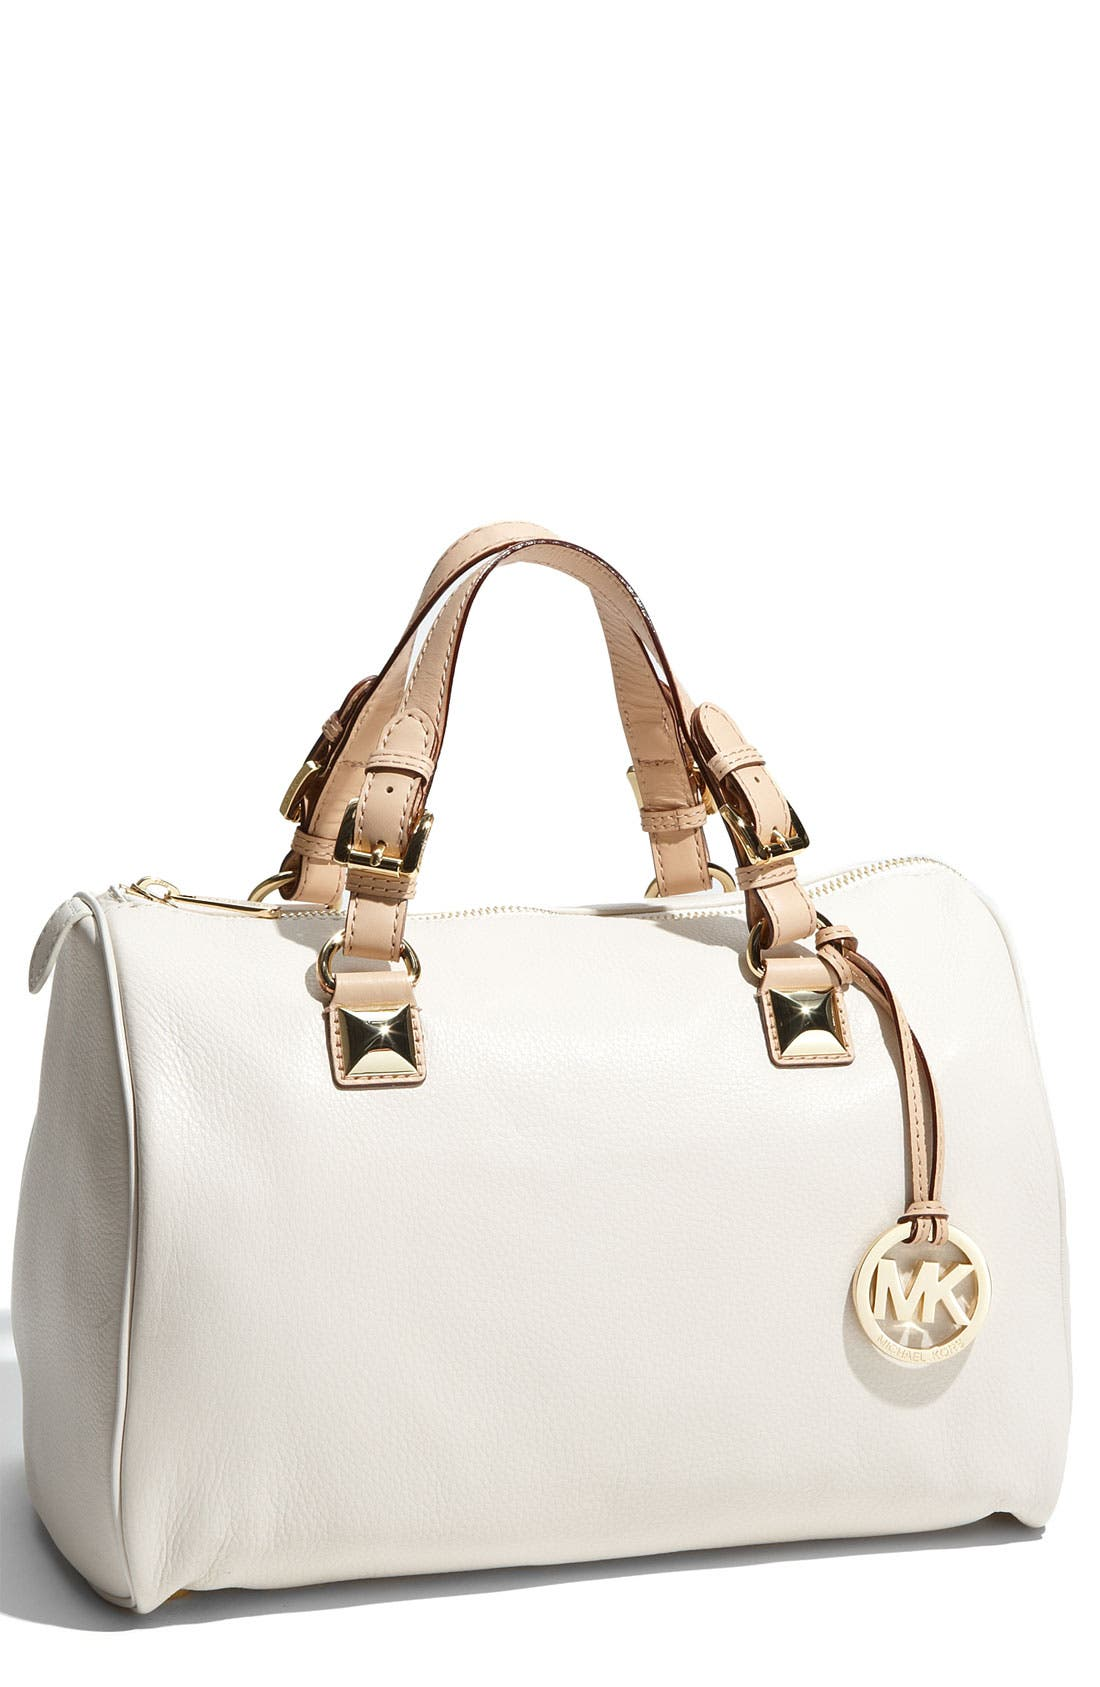 Alternate Image 1 Selected - MICHAEL Michael Kors 'Grayson' Leather Satchel